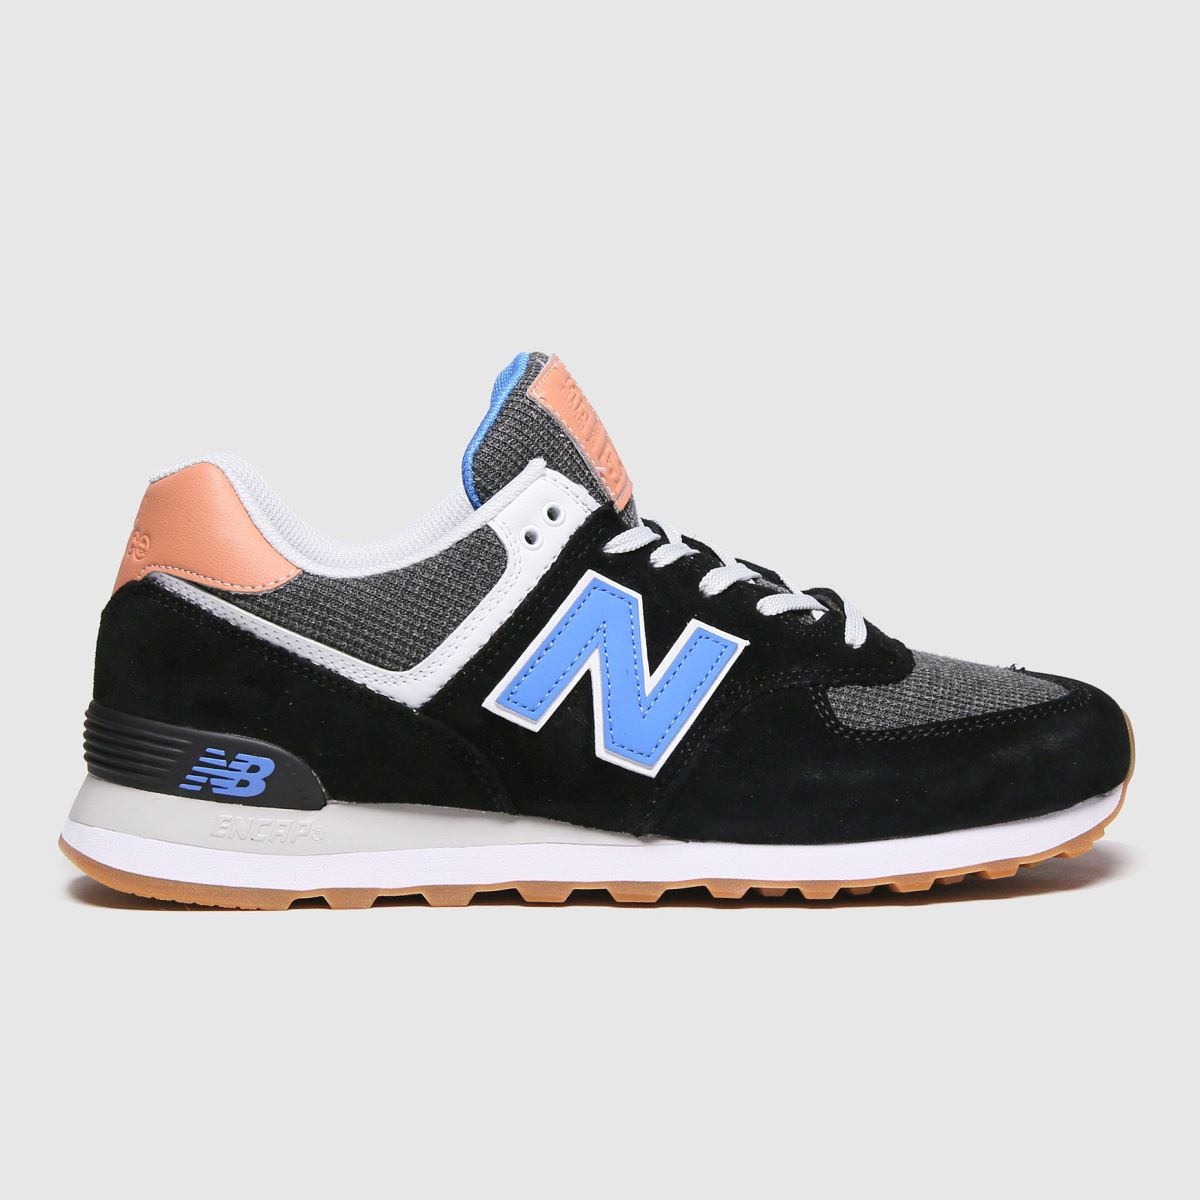 New Balance Black And Blue 574 Trainers